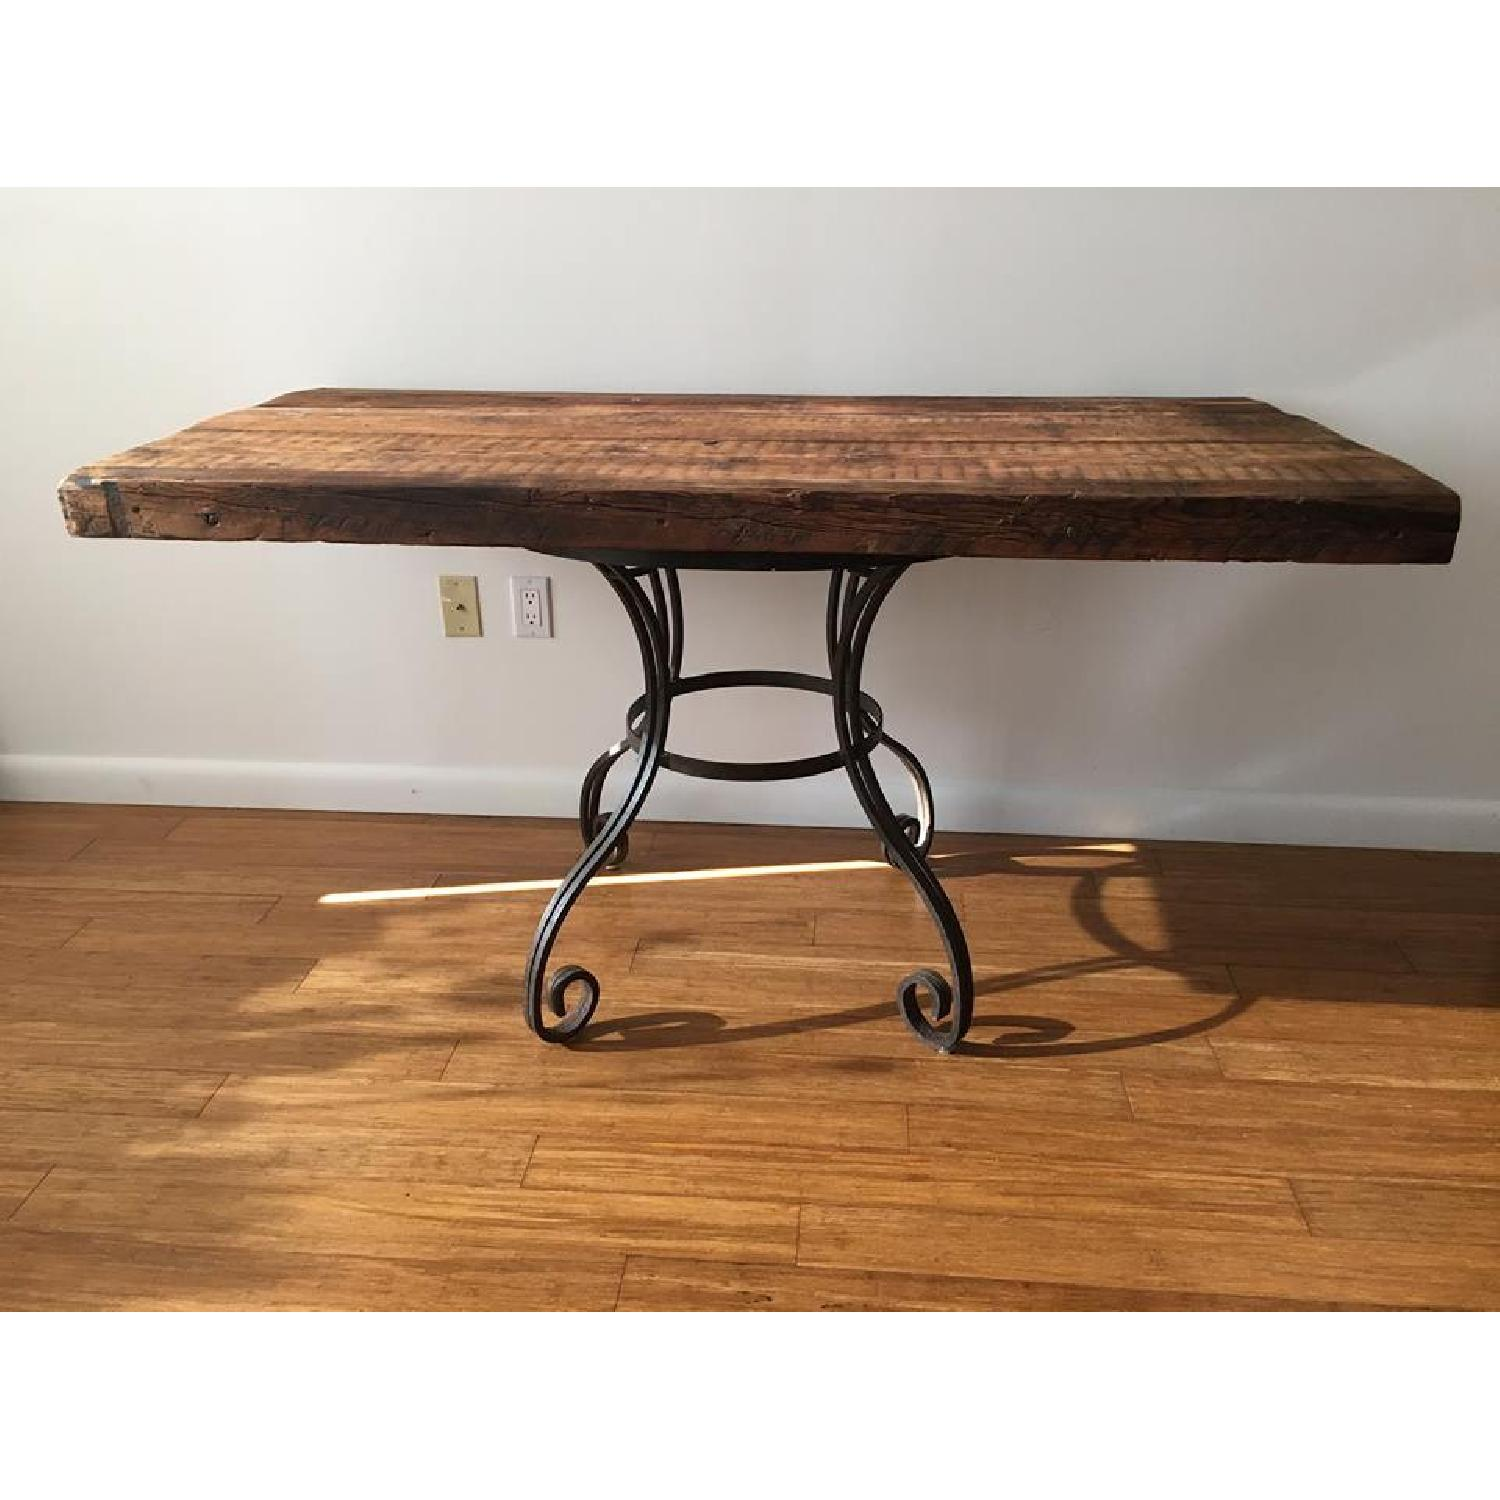 Rustic Dining Table w/ 1 Bench - image-2